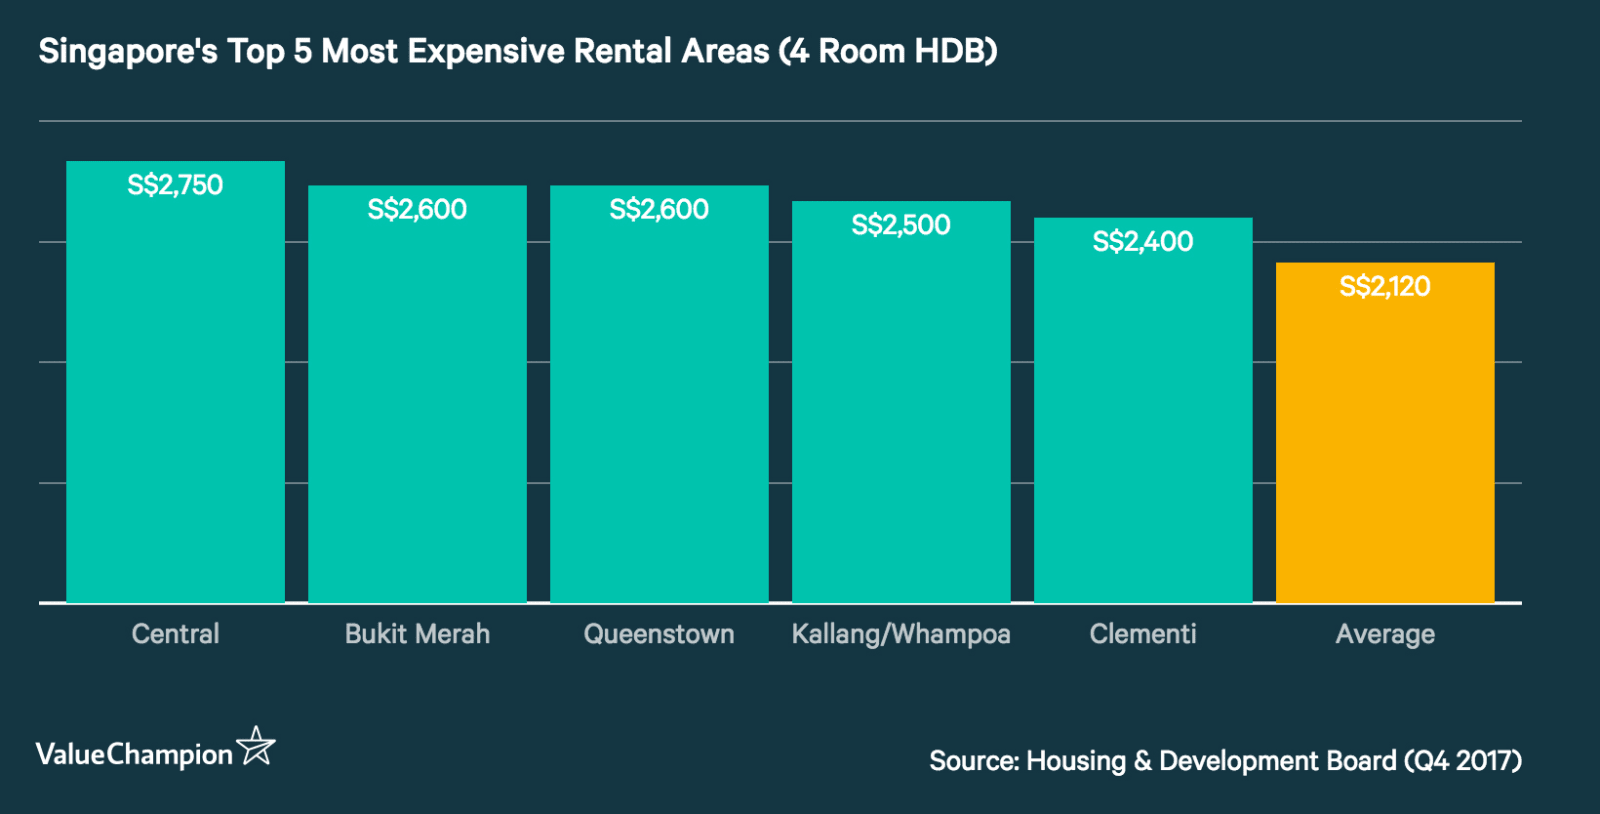 2017 Travel Expenses For Rental Property The Cheapest Most Expensive Areas To Live In Singapore